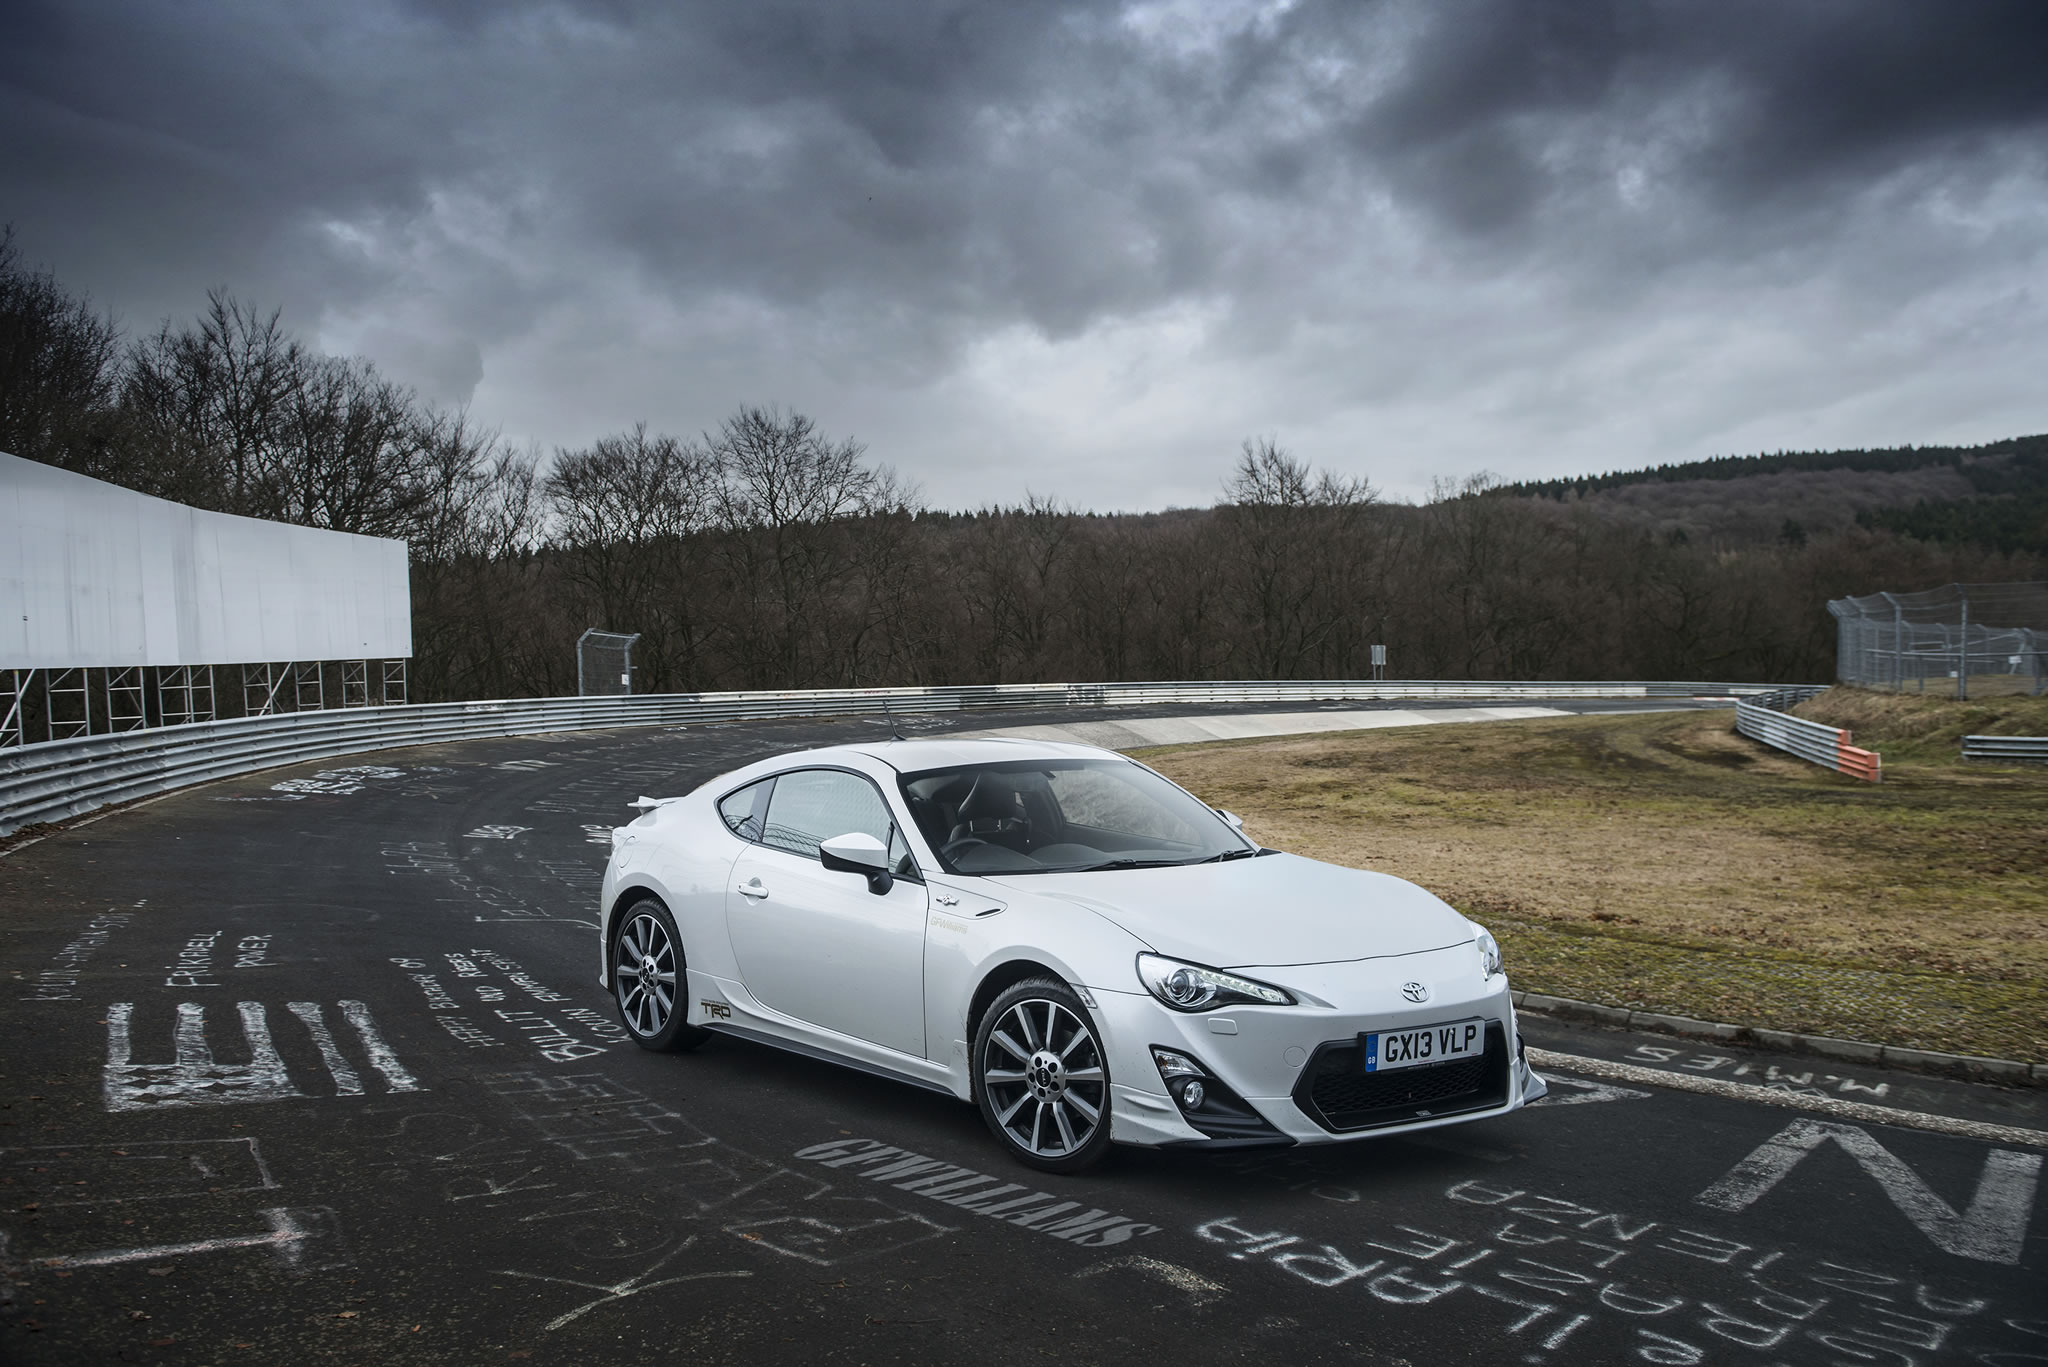 2014 toyota gt86 trd front photo pearl white color